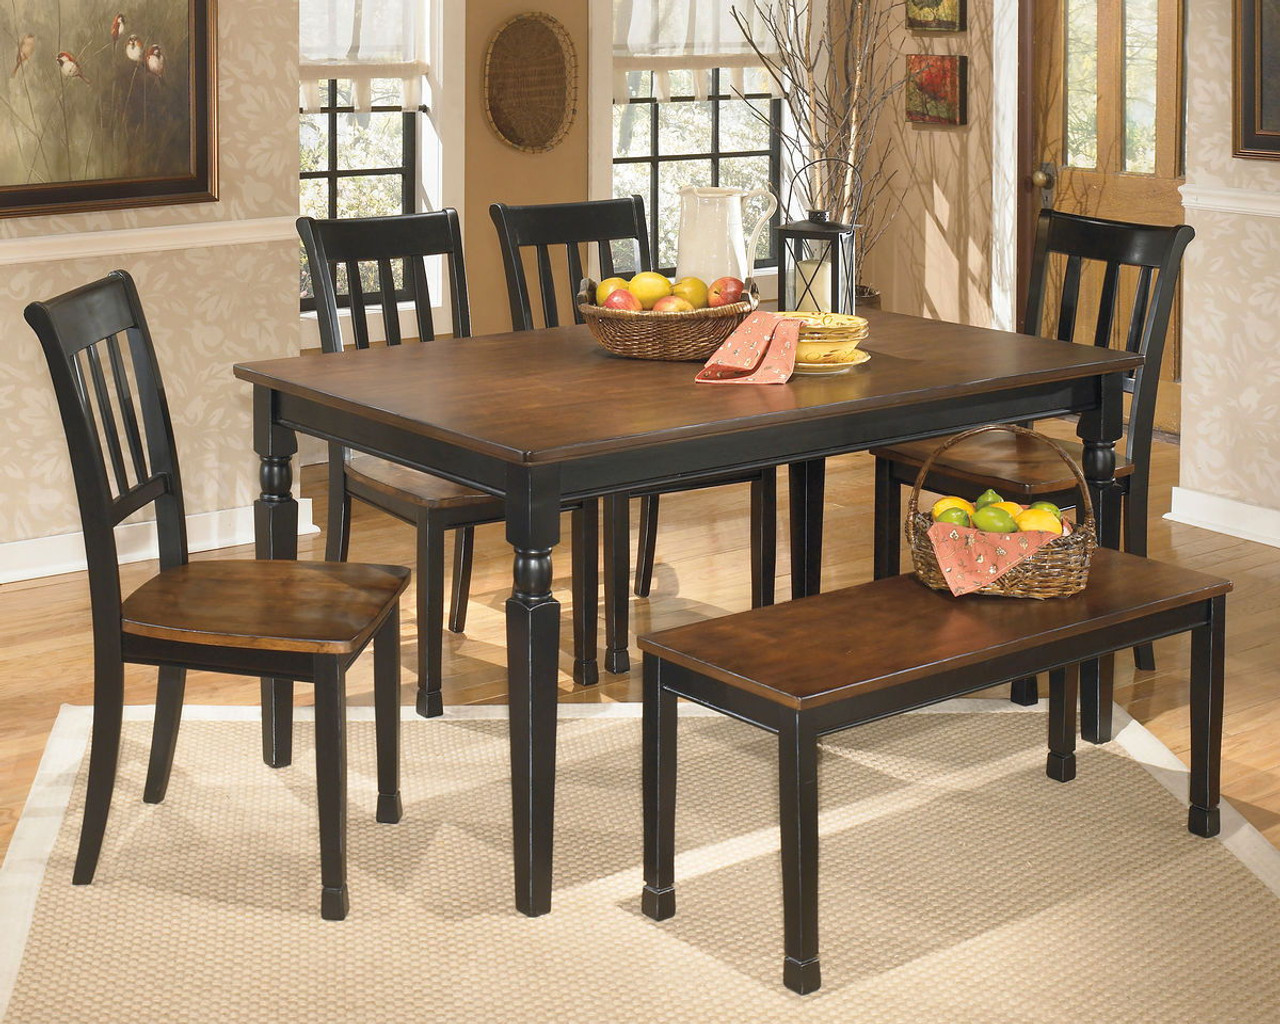 Owingsville Black Brown 6 Pc Rectangular Table 4 Side Chairs Bench On Sale At American Furniture Of Slidell Serving Slidell La